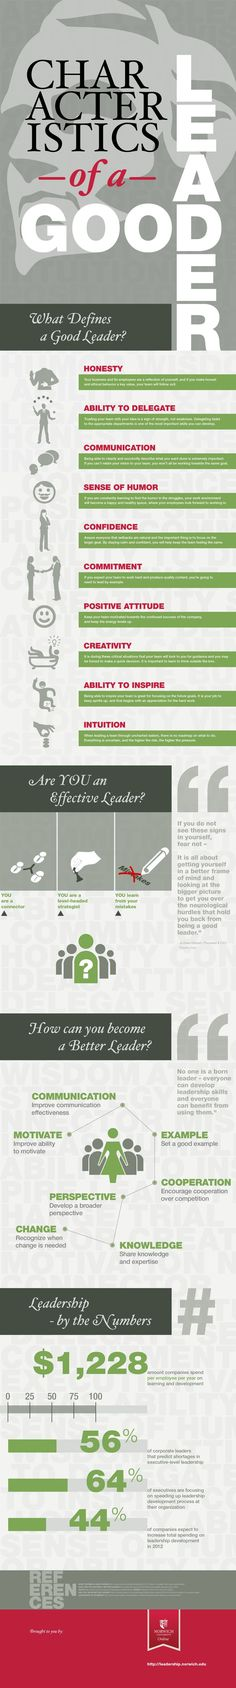 The 10 Defining Traits of an Amazing Leader on a nifty infographic via The Muse